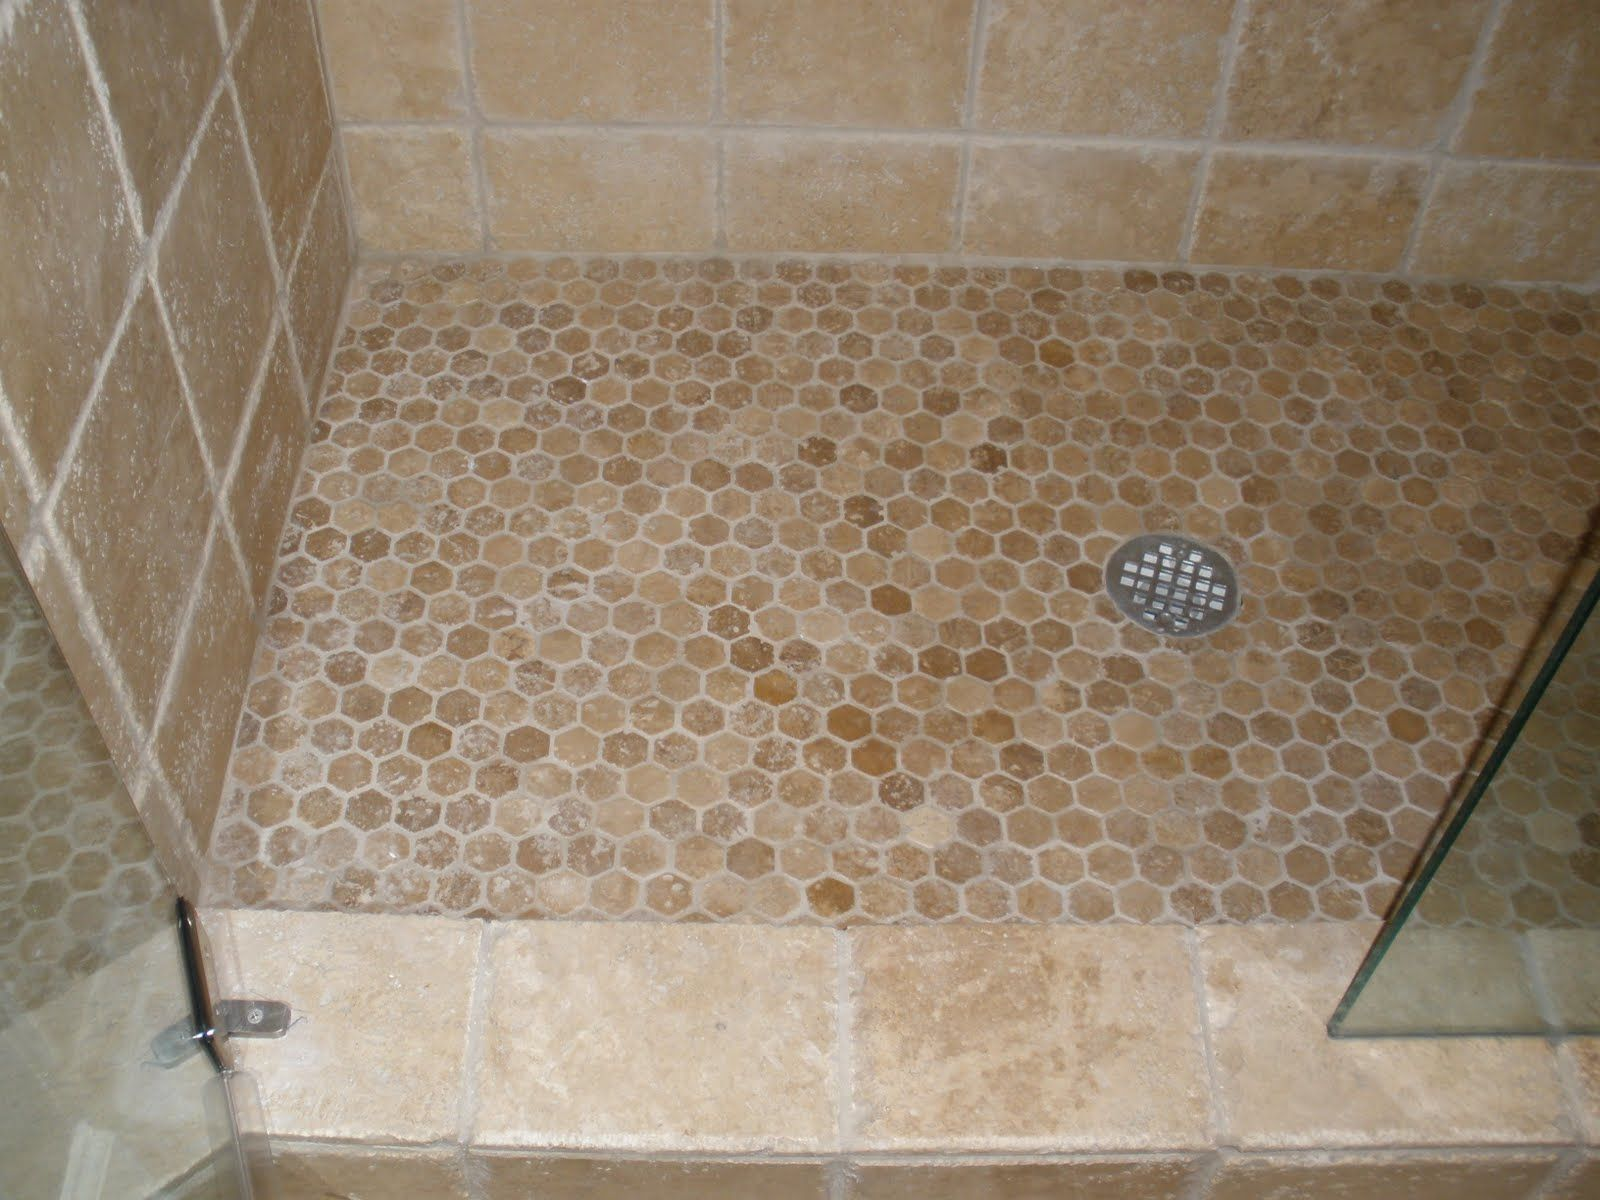 Floor shower floor tile with design in bathroom and best tile for floor shower floor tile with design in bathroom and best tile for shower floor for dailygadgetfo Images